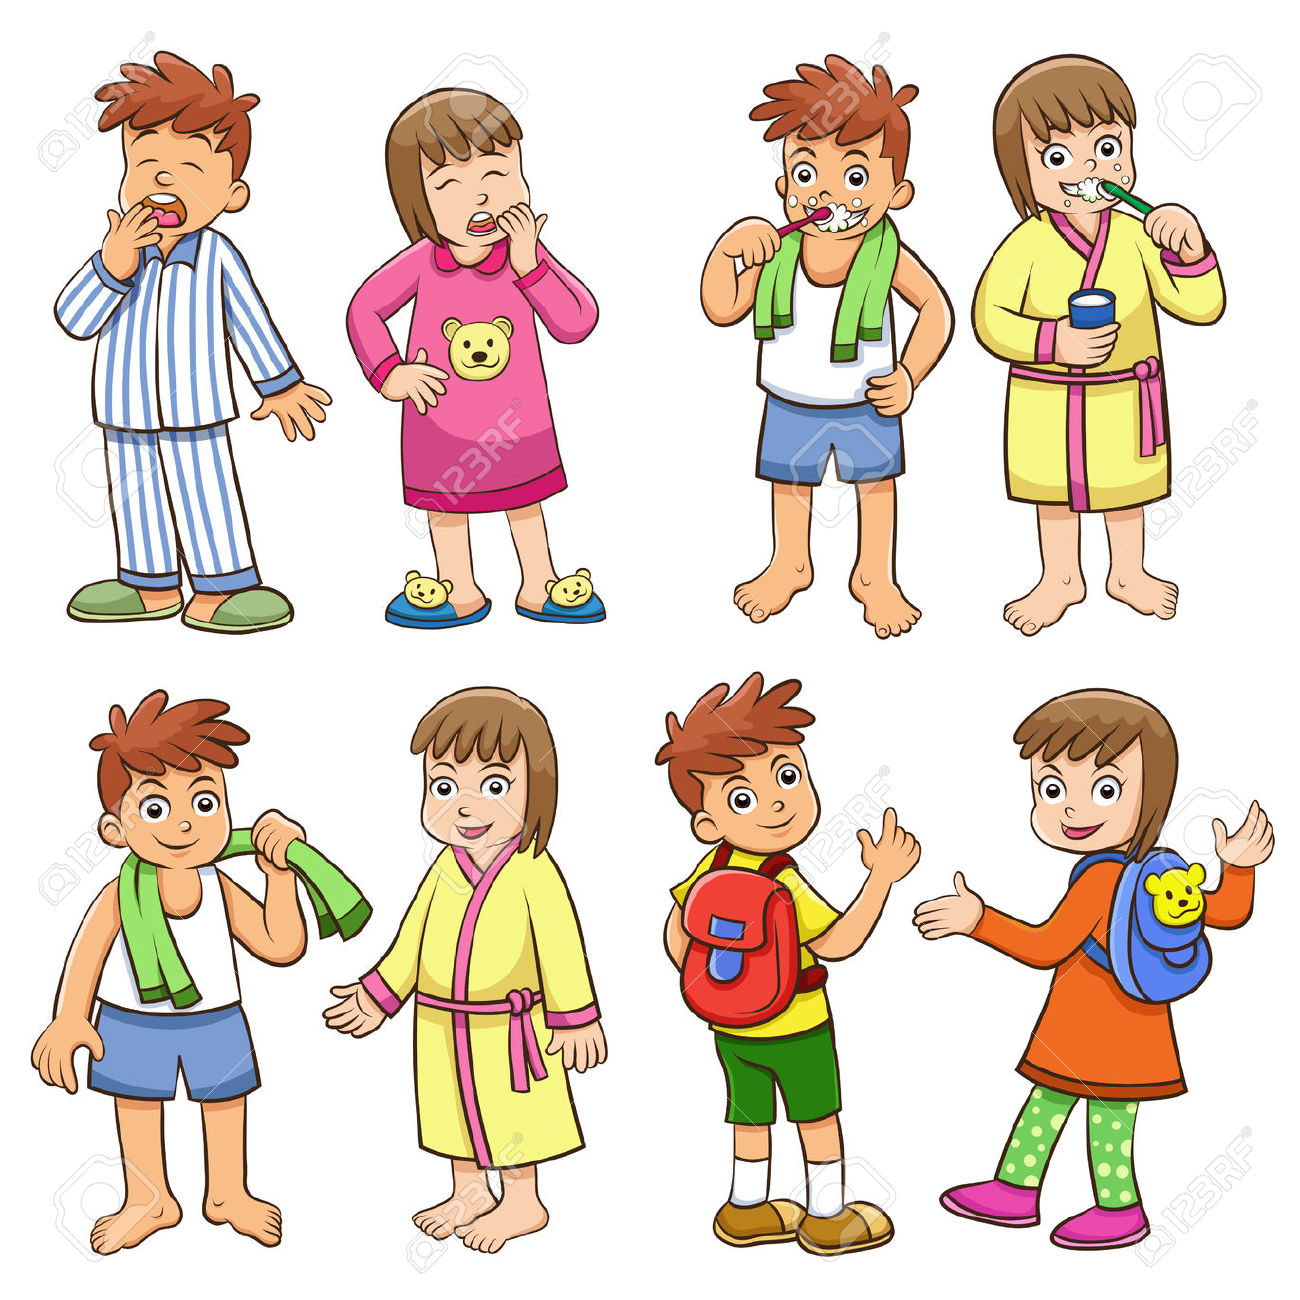 Activities clipart daily routine. Schedule cartoon